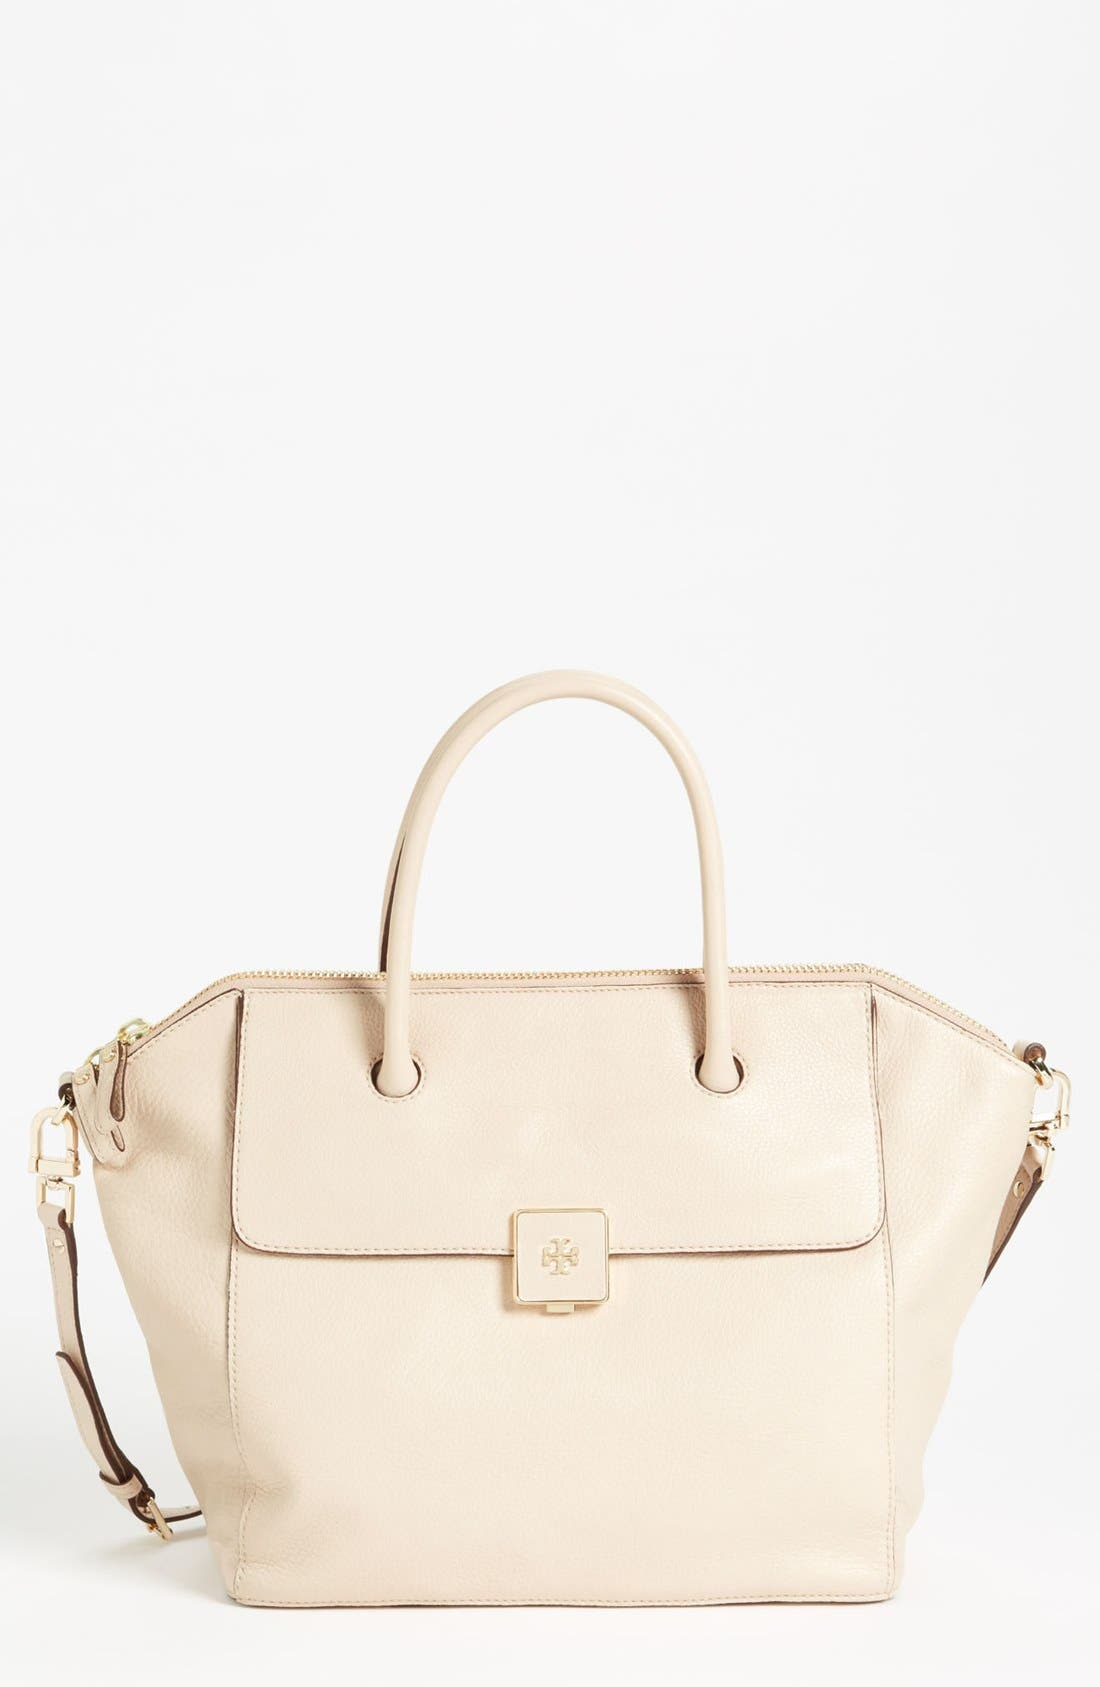 Alternate Image 1 Selected - Tory Burch 'Clara - Large' Leather Satchel